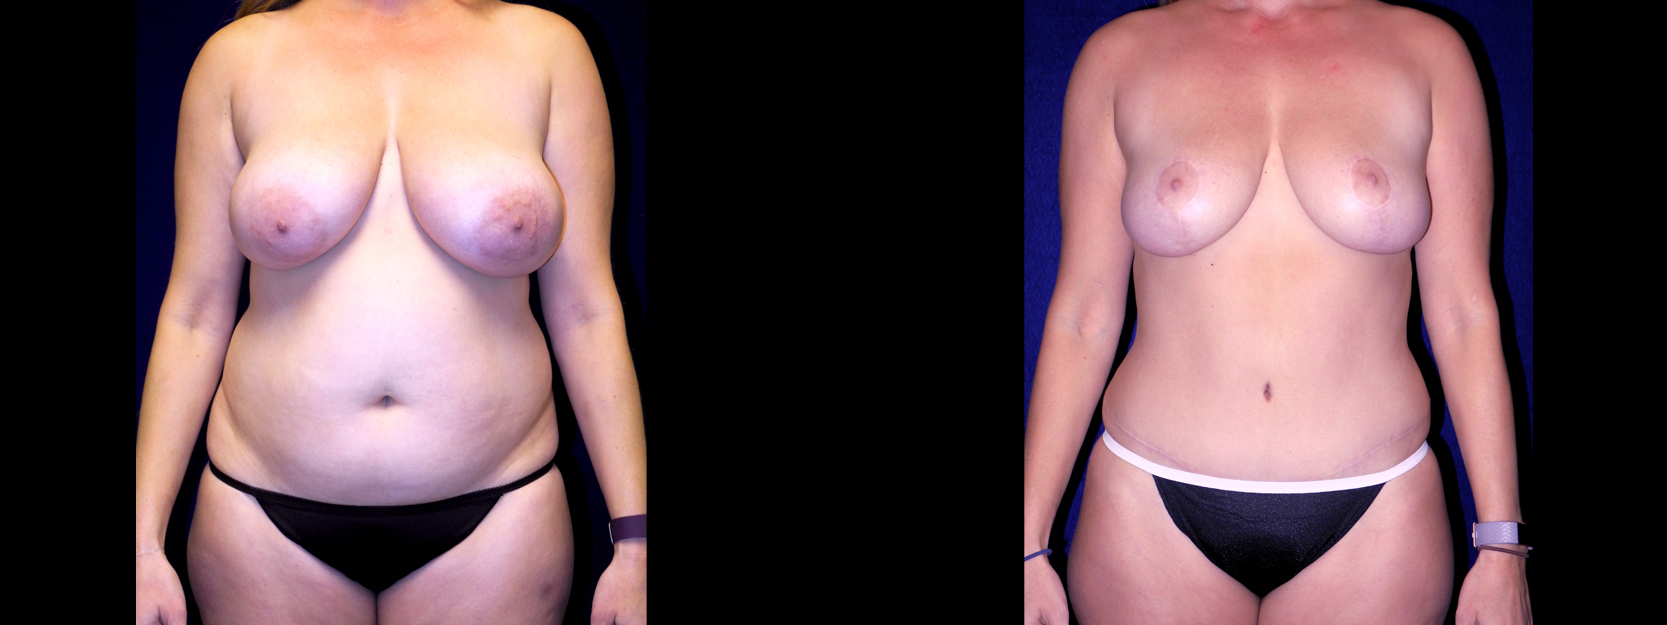 Frontal View - Breast Reduction, Tummy Tuck, Liposuction